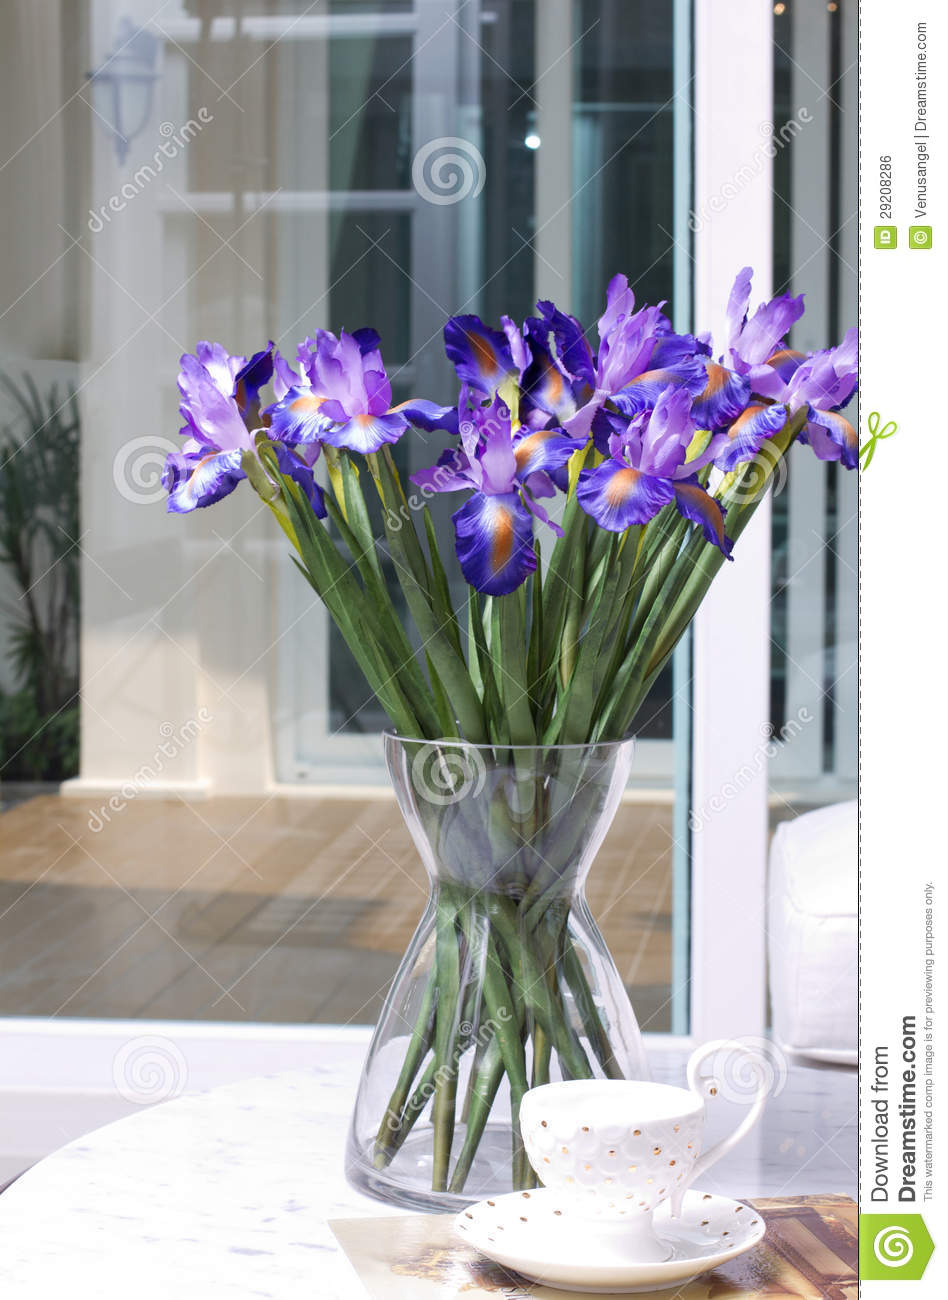 Artificial Iris Flowers In A Glass Vase Royalty Free Stock Image Image 29208286